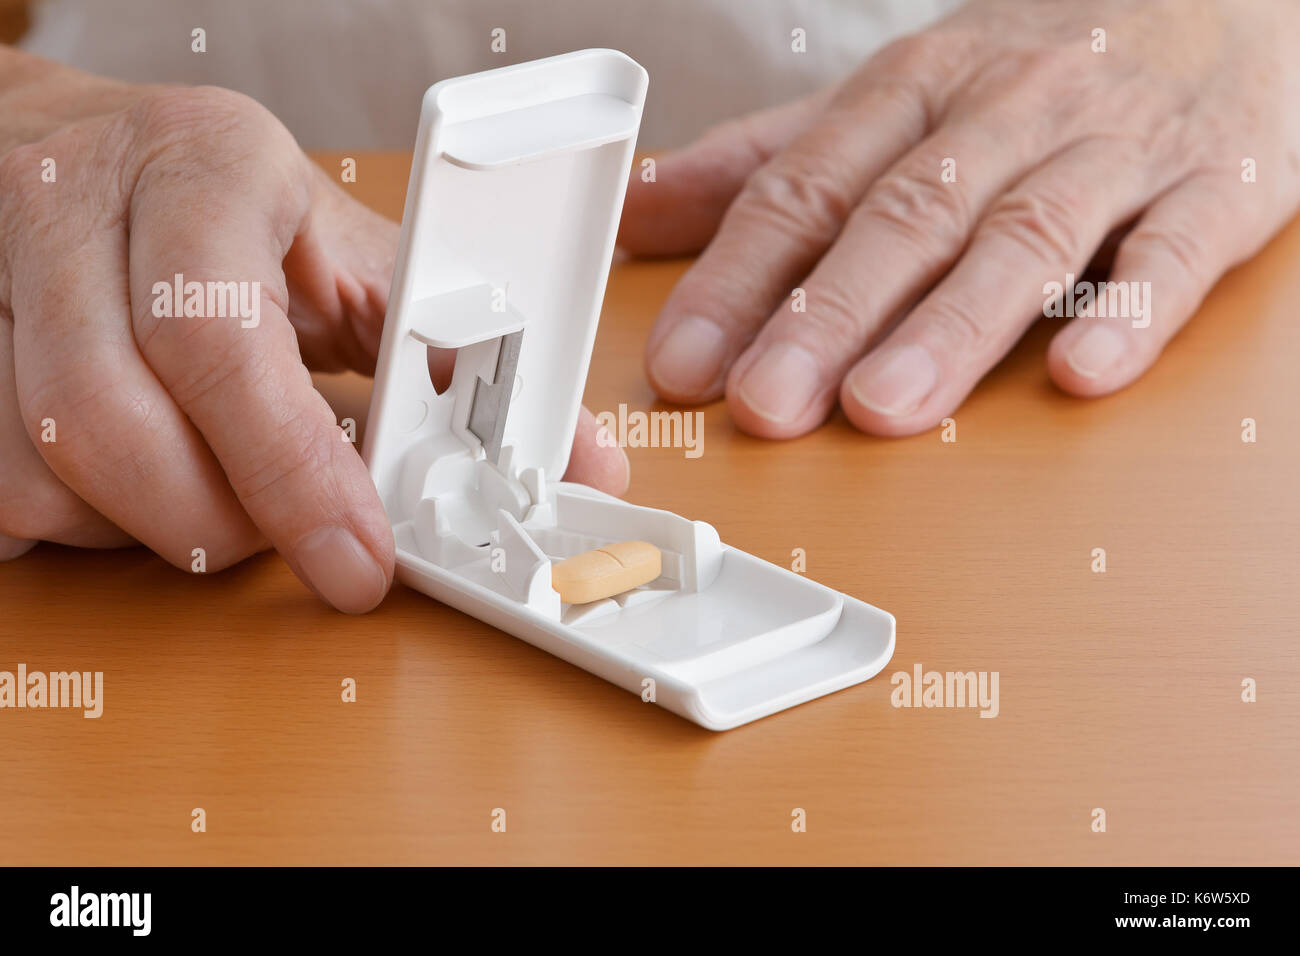 Two hands on a wooden tabletop holding a white plastic pill or tablet cutter with one big orange tablet pill inside, Stock Photo